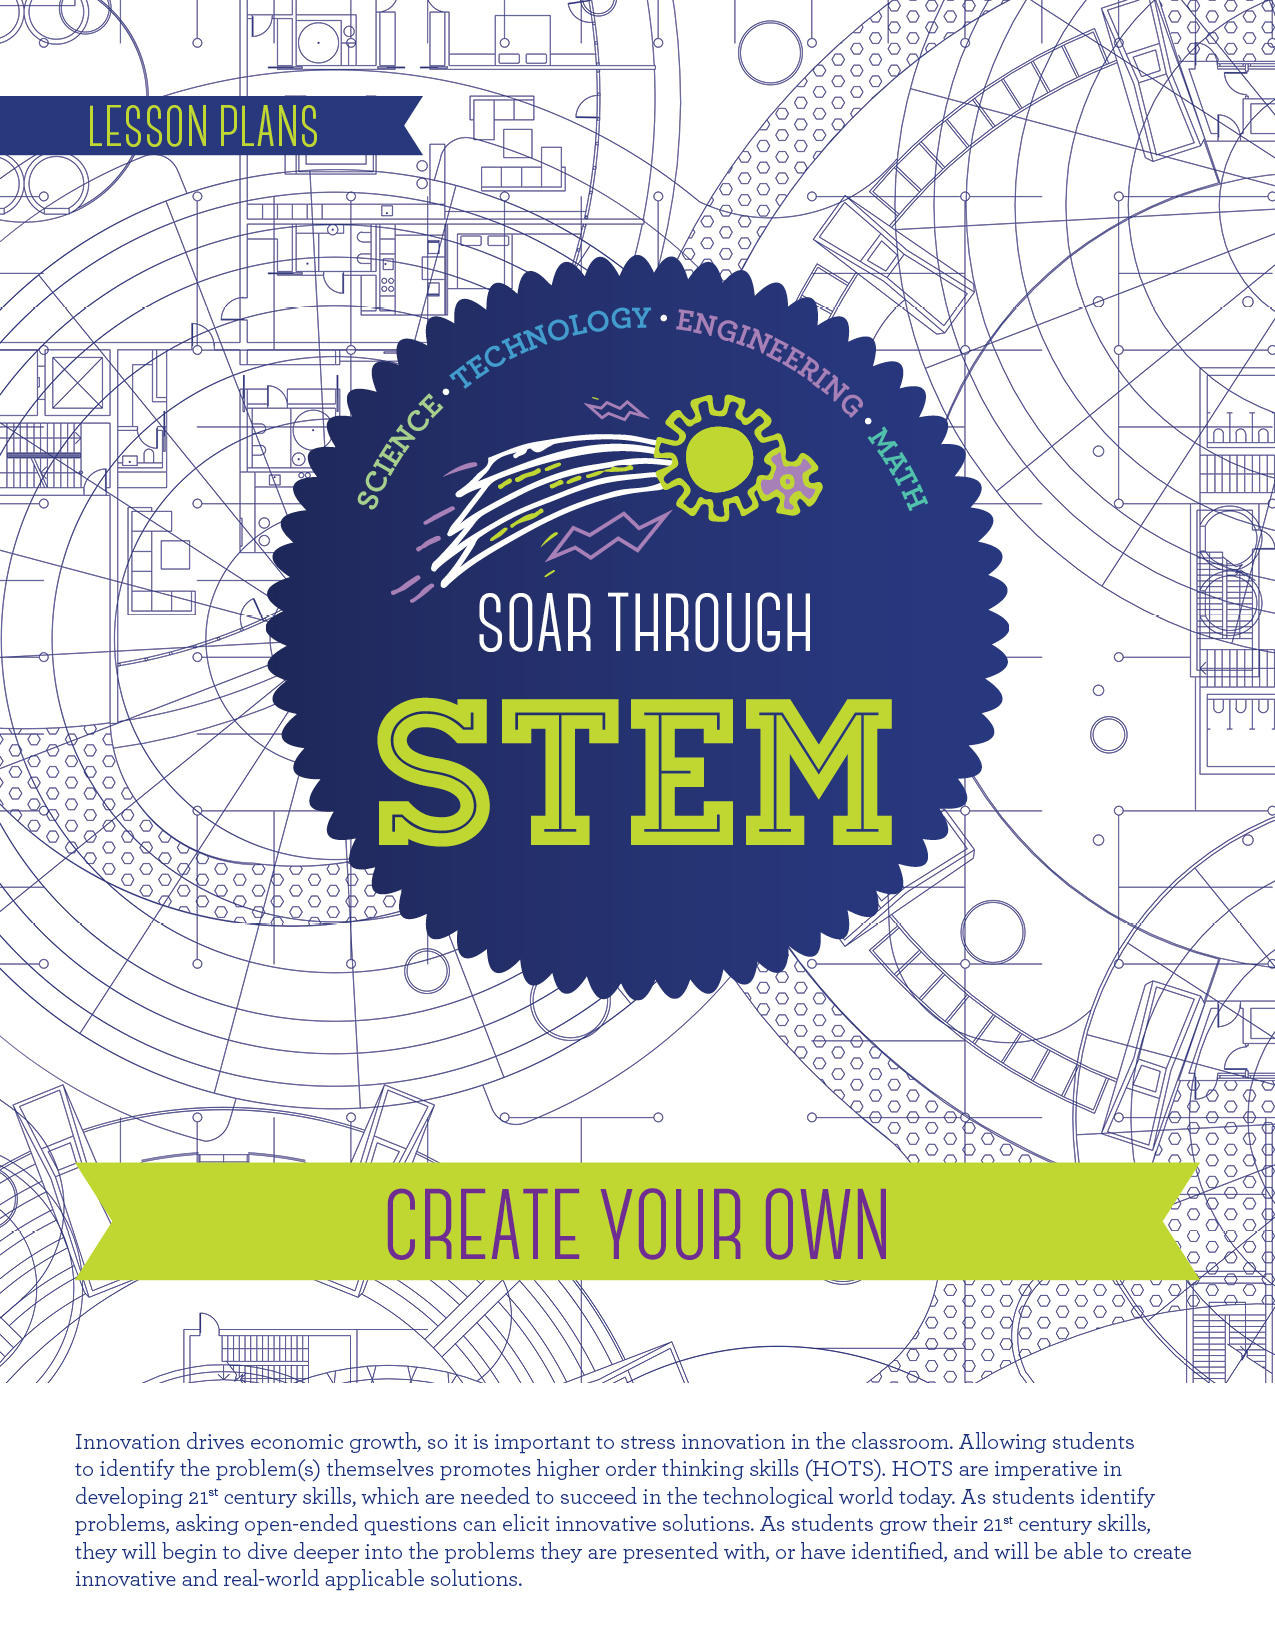 Stem Store Soar Through Stem